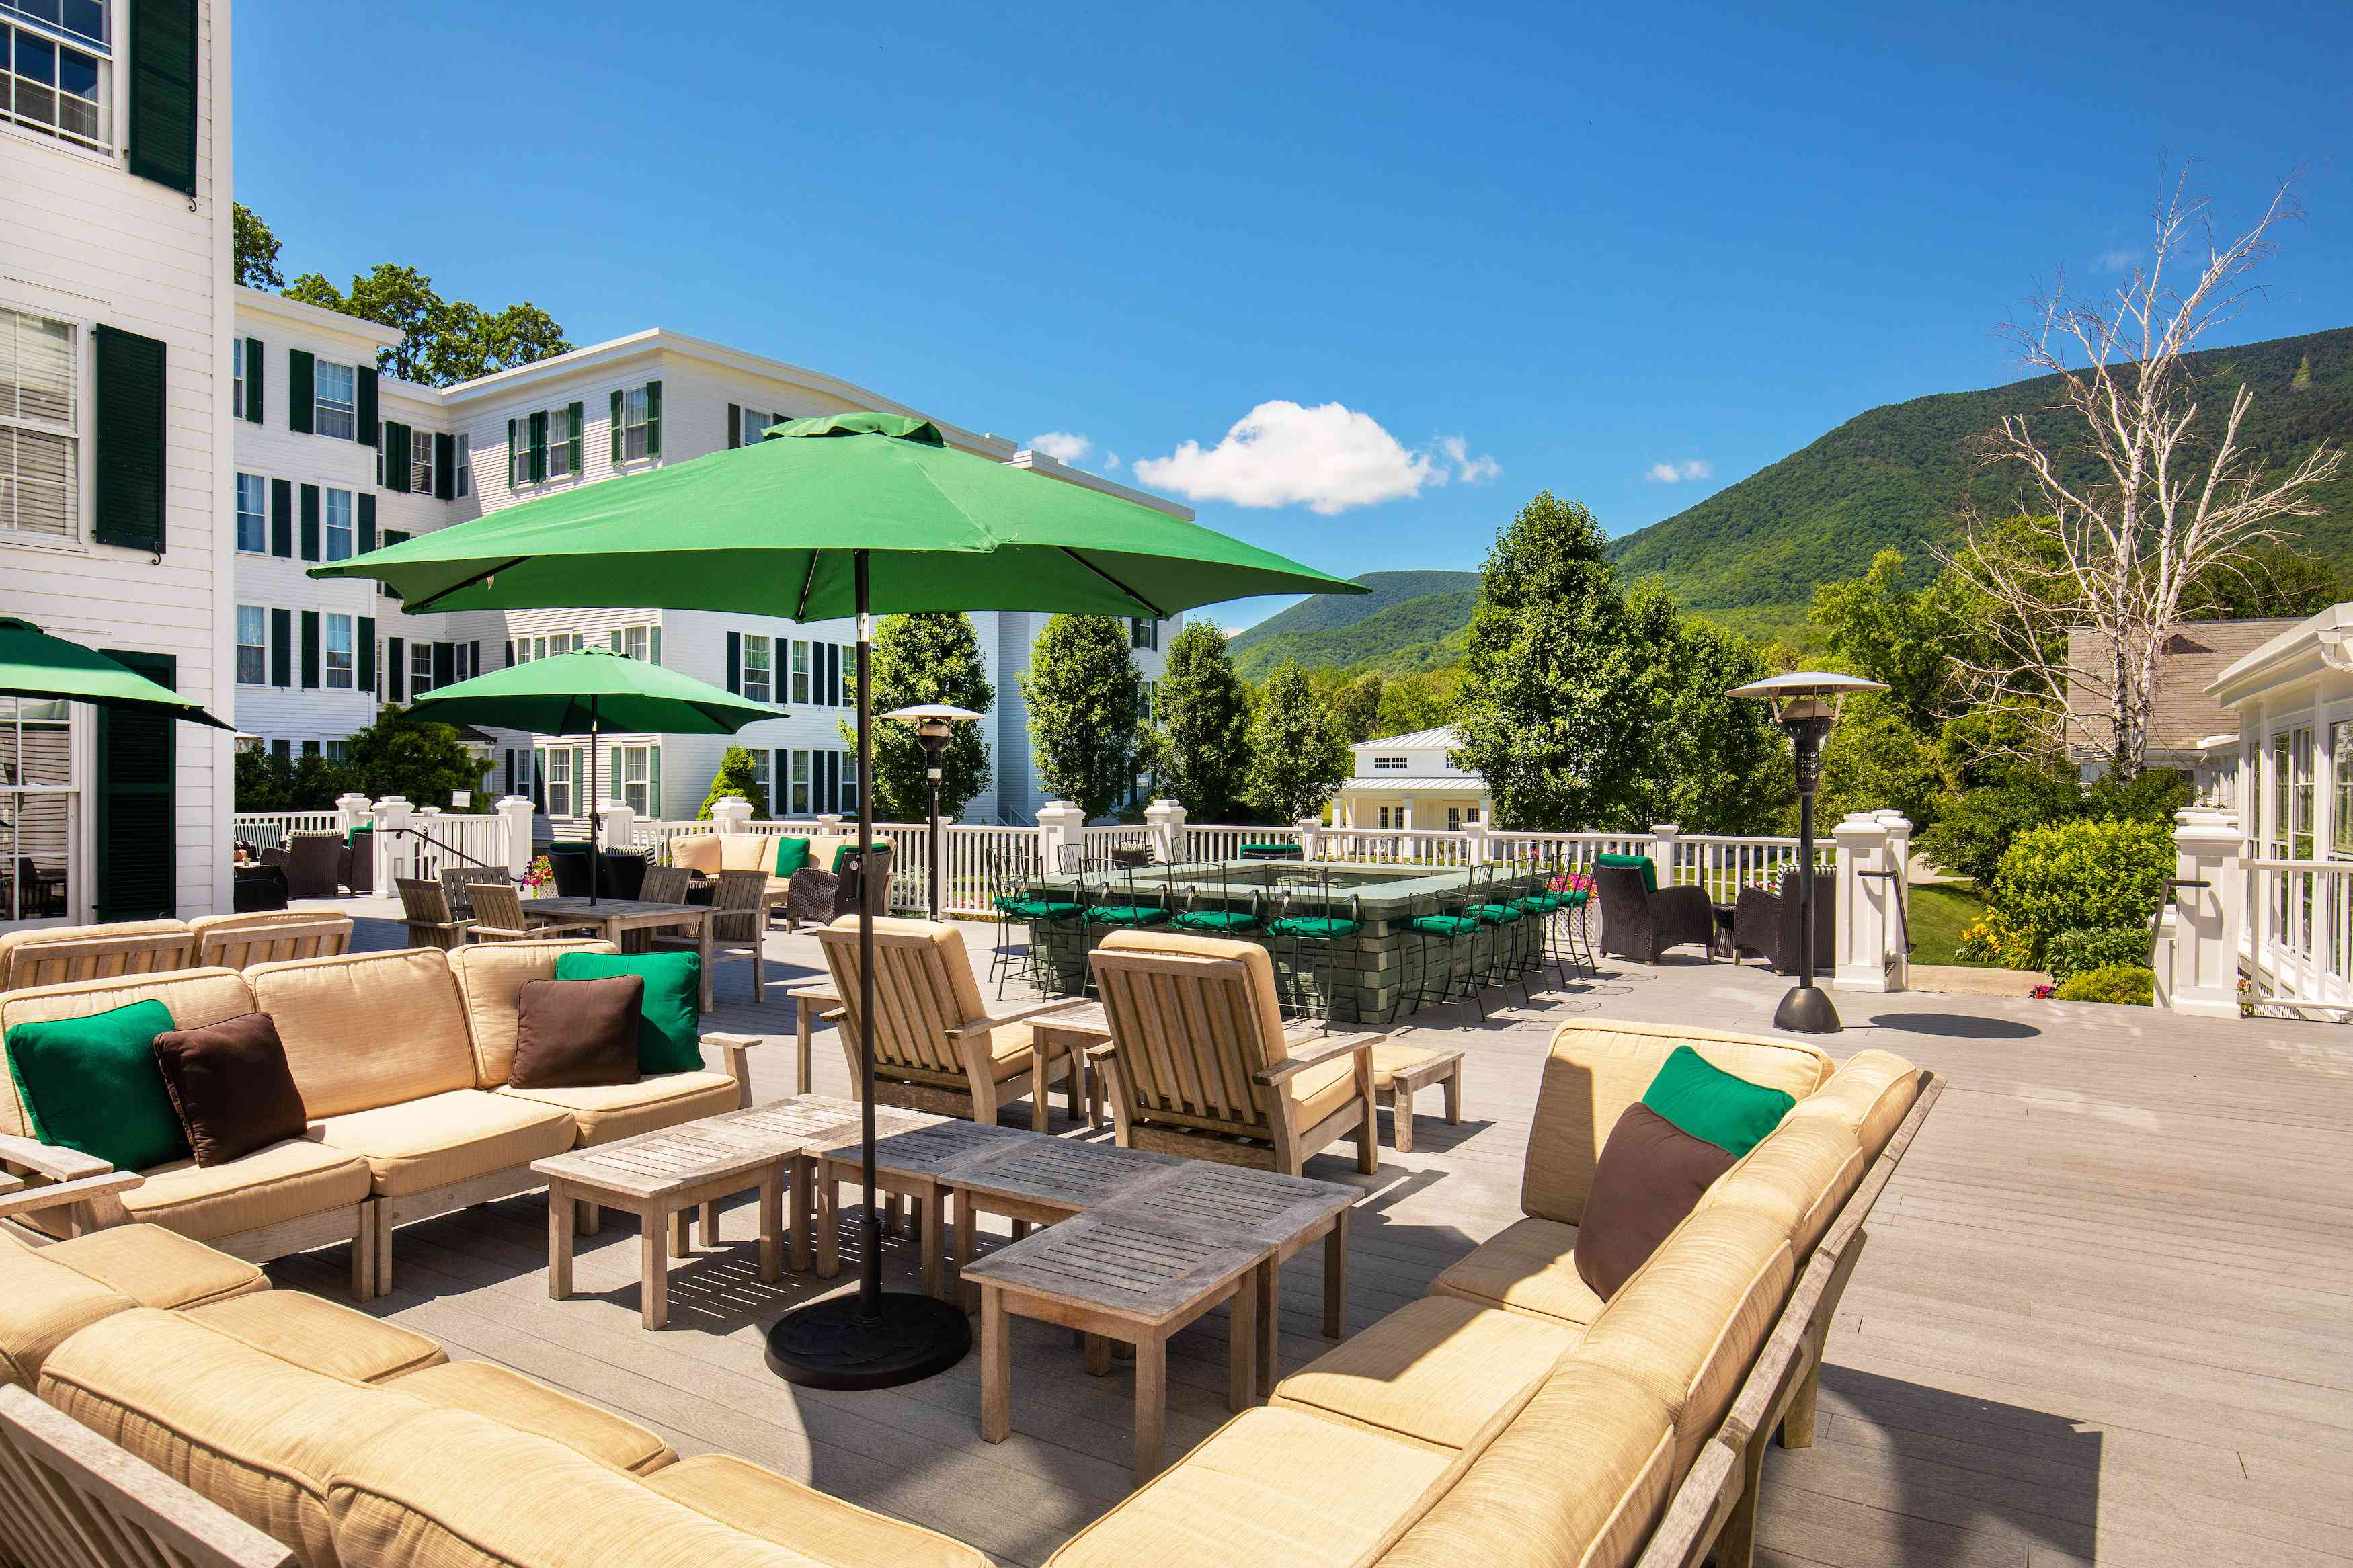 Deck lounge at The Equinox Resort overlooking the mountains in Manchester, Vermont